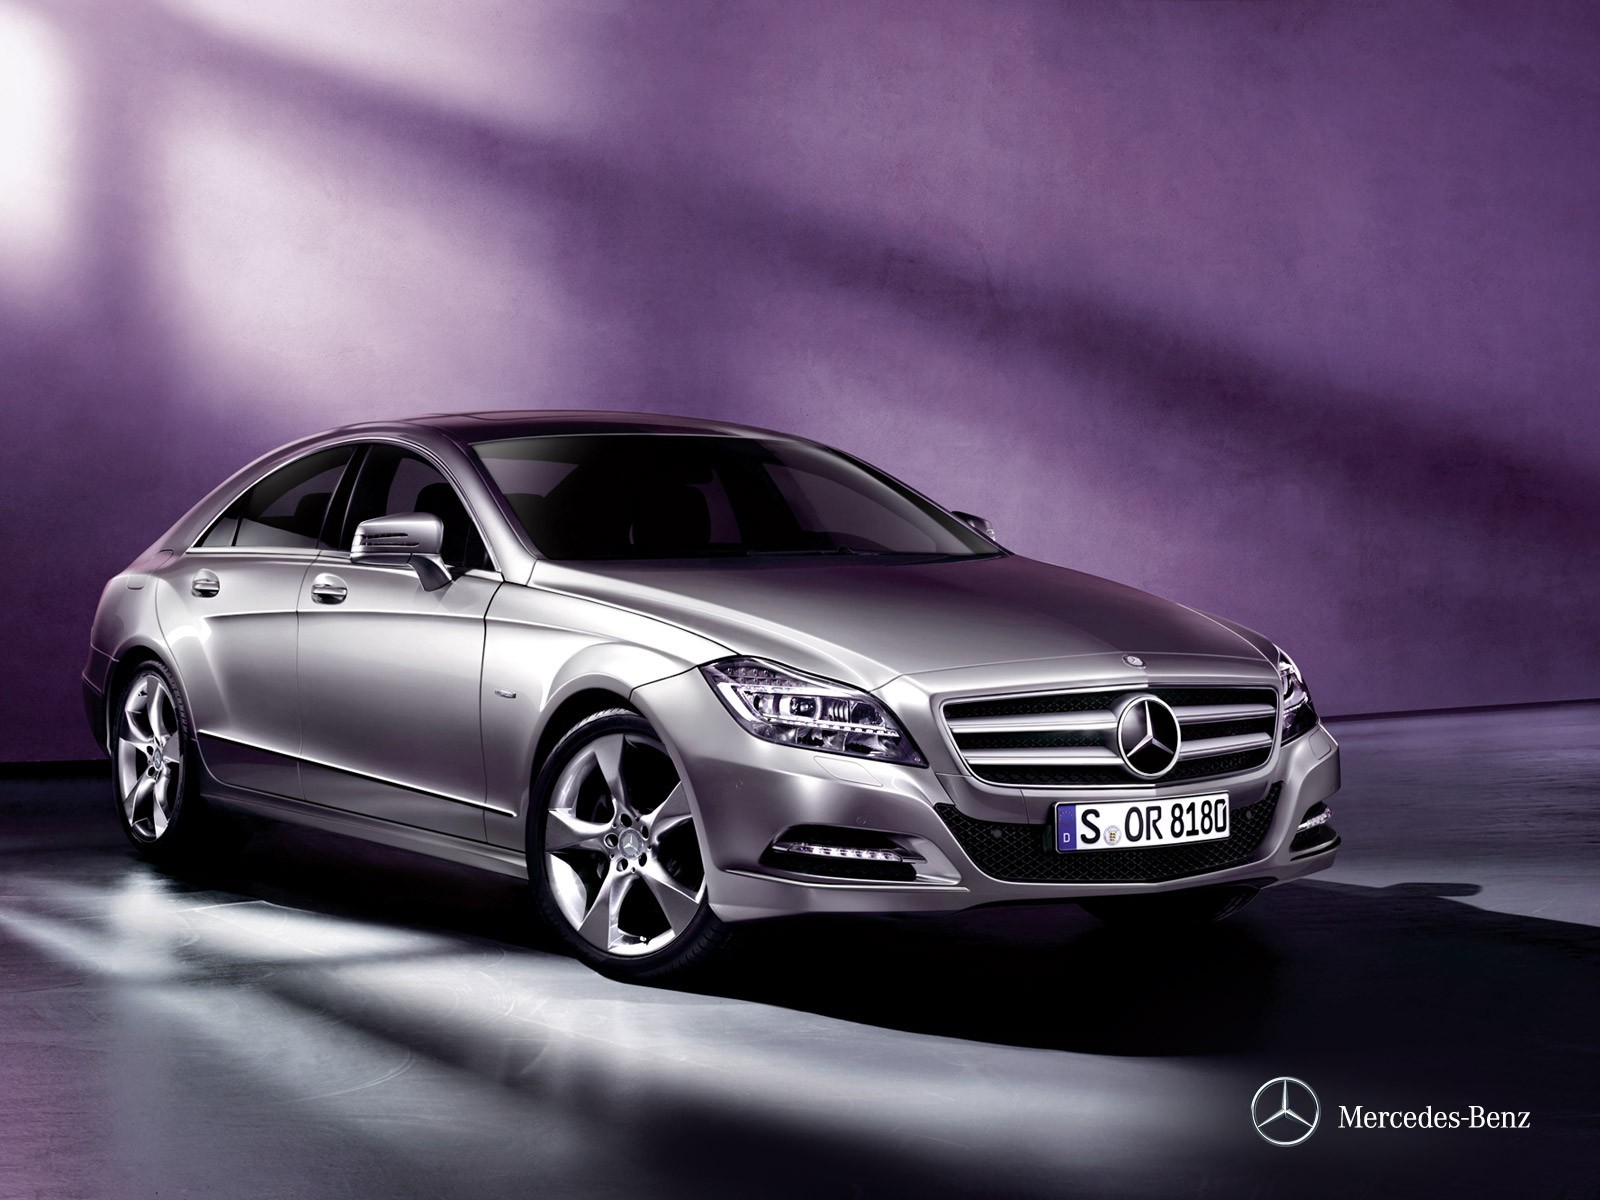 cars Mercedes-Benz CLS-Class Mercedes-Benz HD Wallpaper